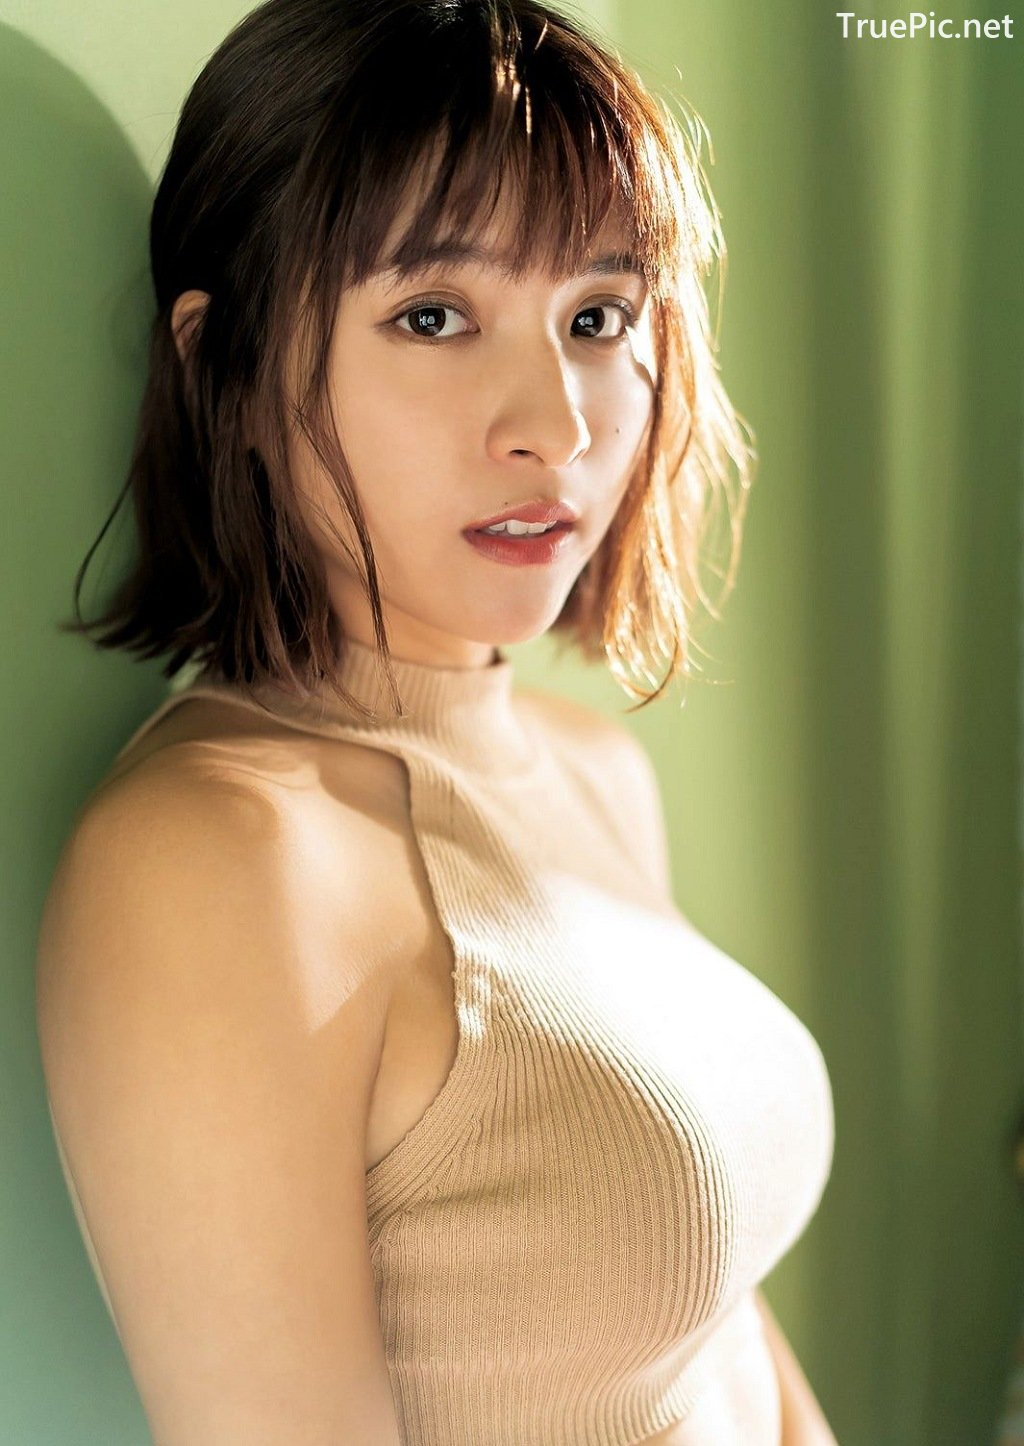 Image Japanese Model - QunQun - [Young Jump] 2020 No.01 - TruePic.net - Picture-7